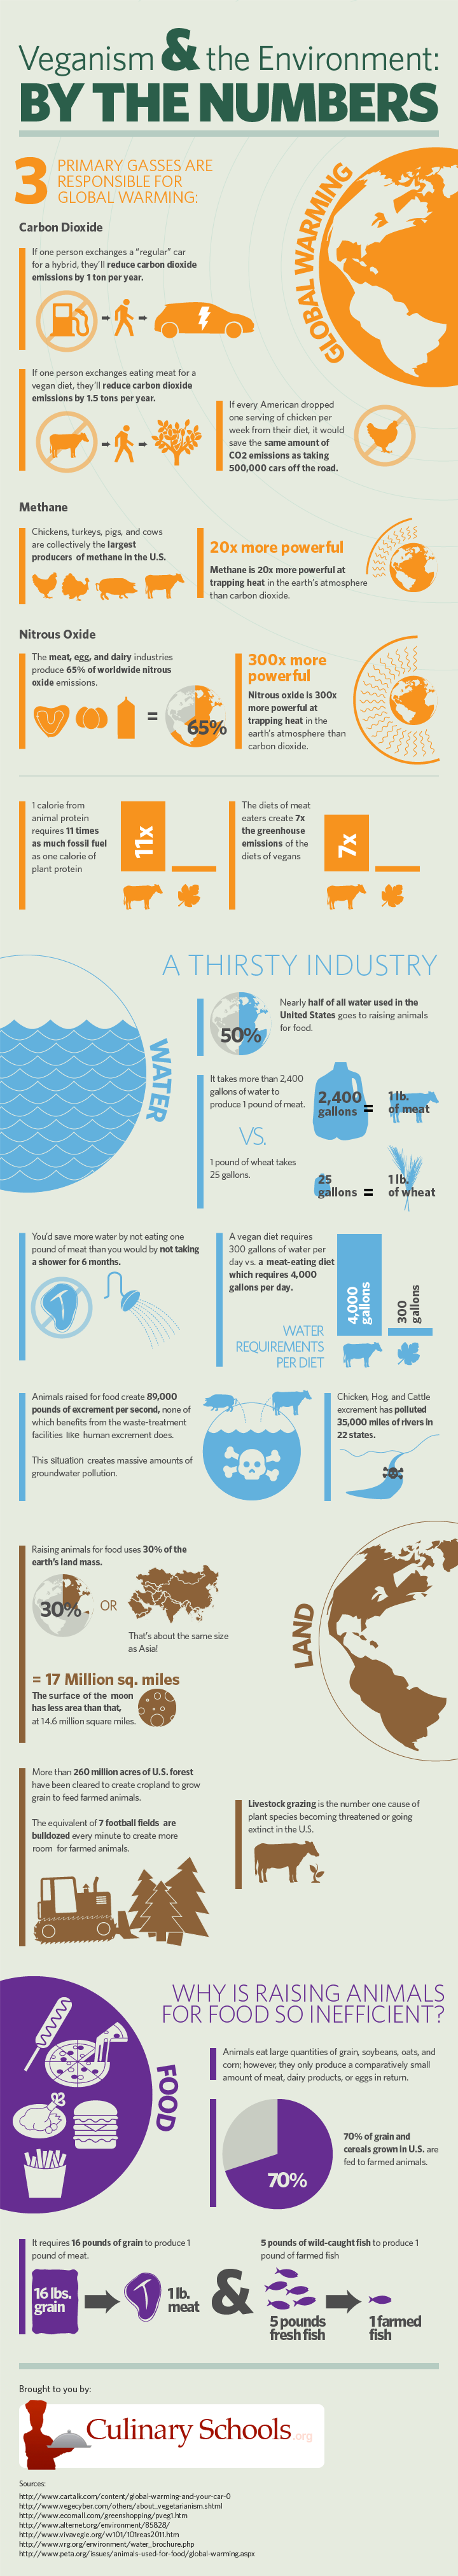 Infographic Veganism by the numbers.